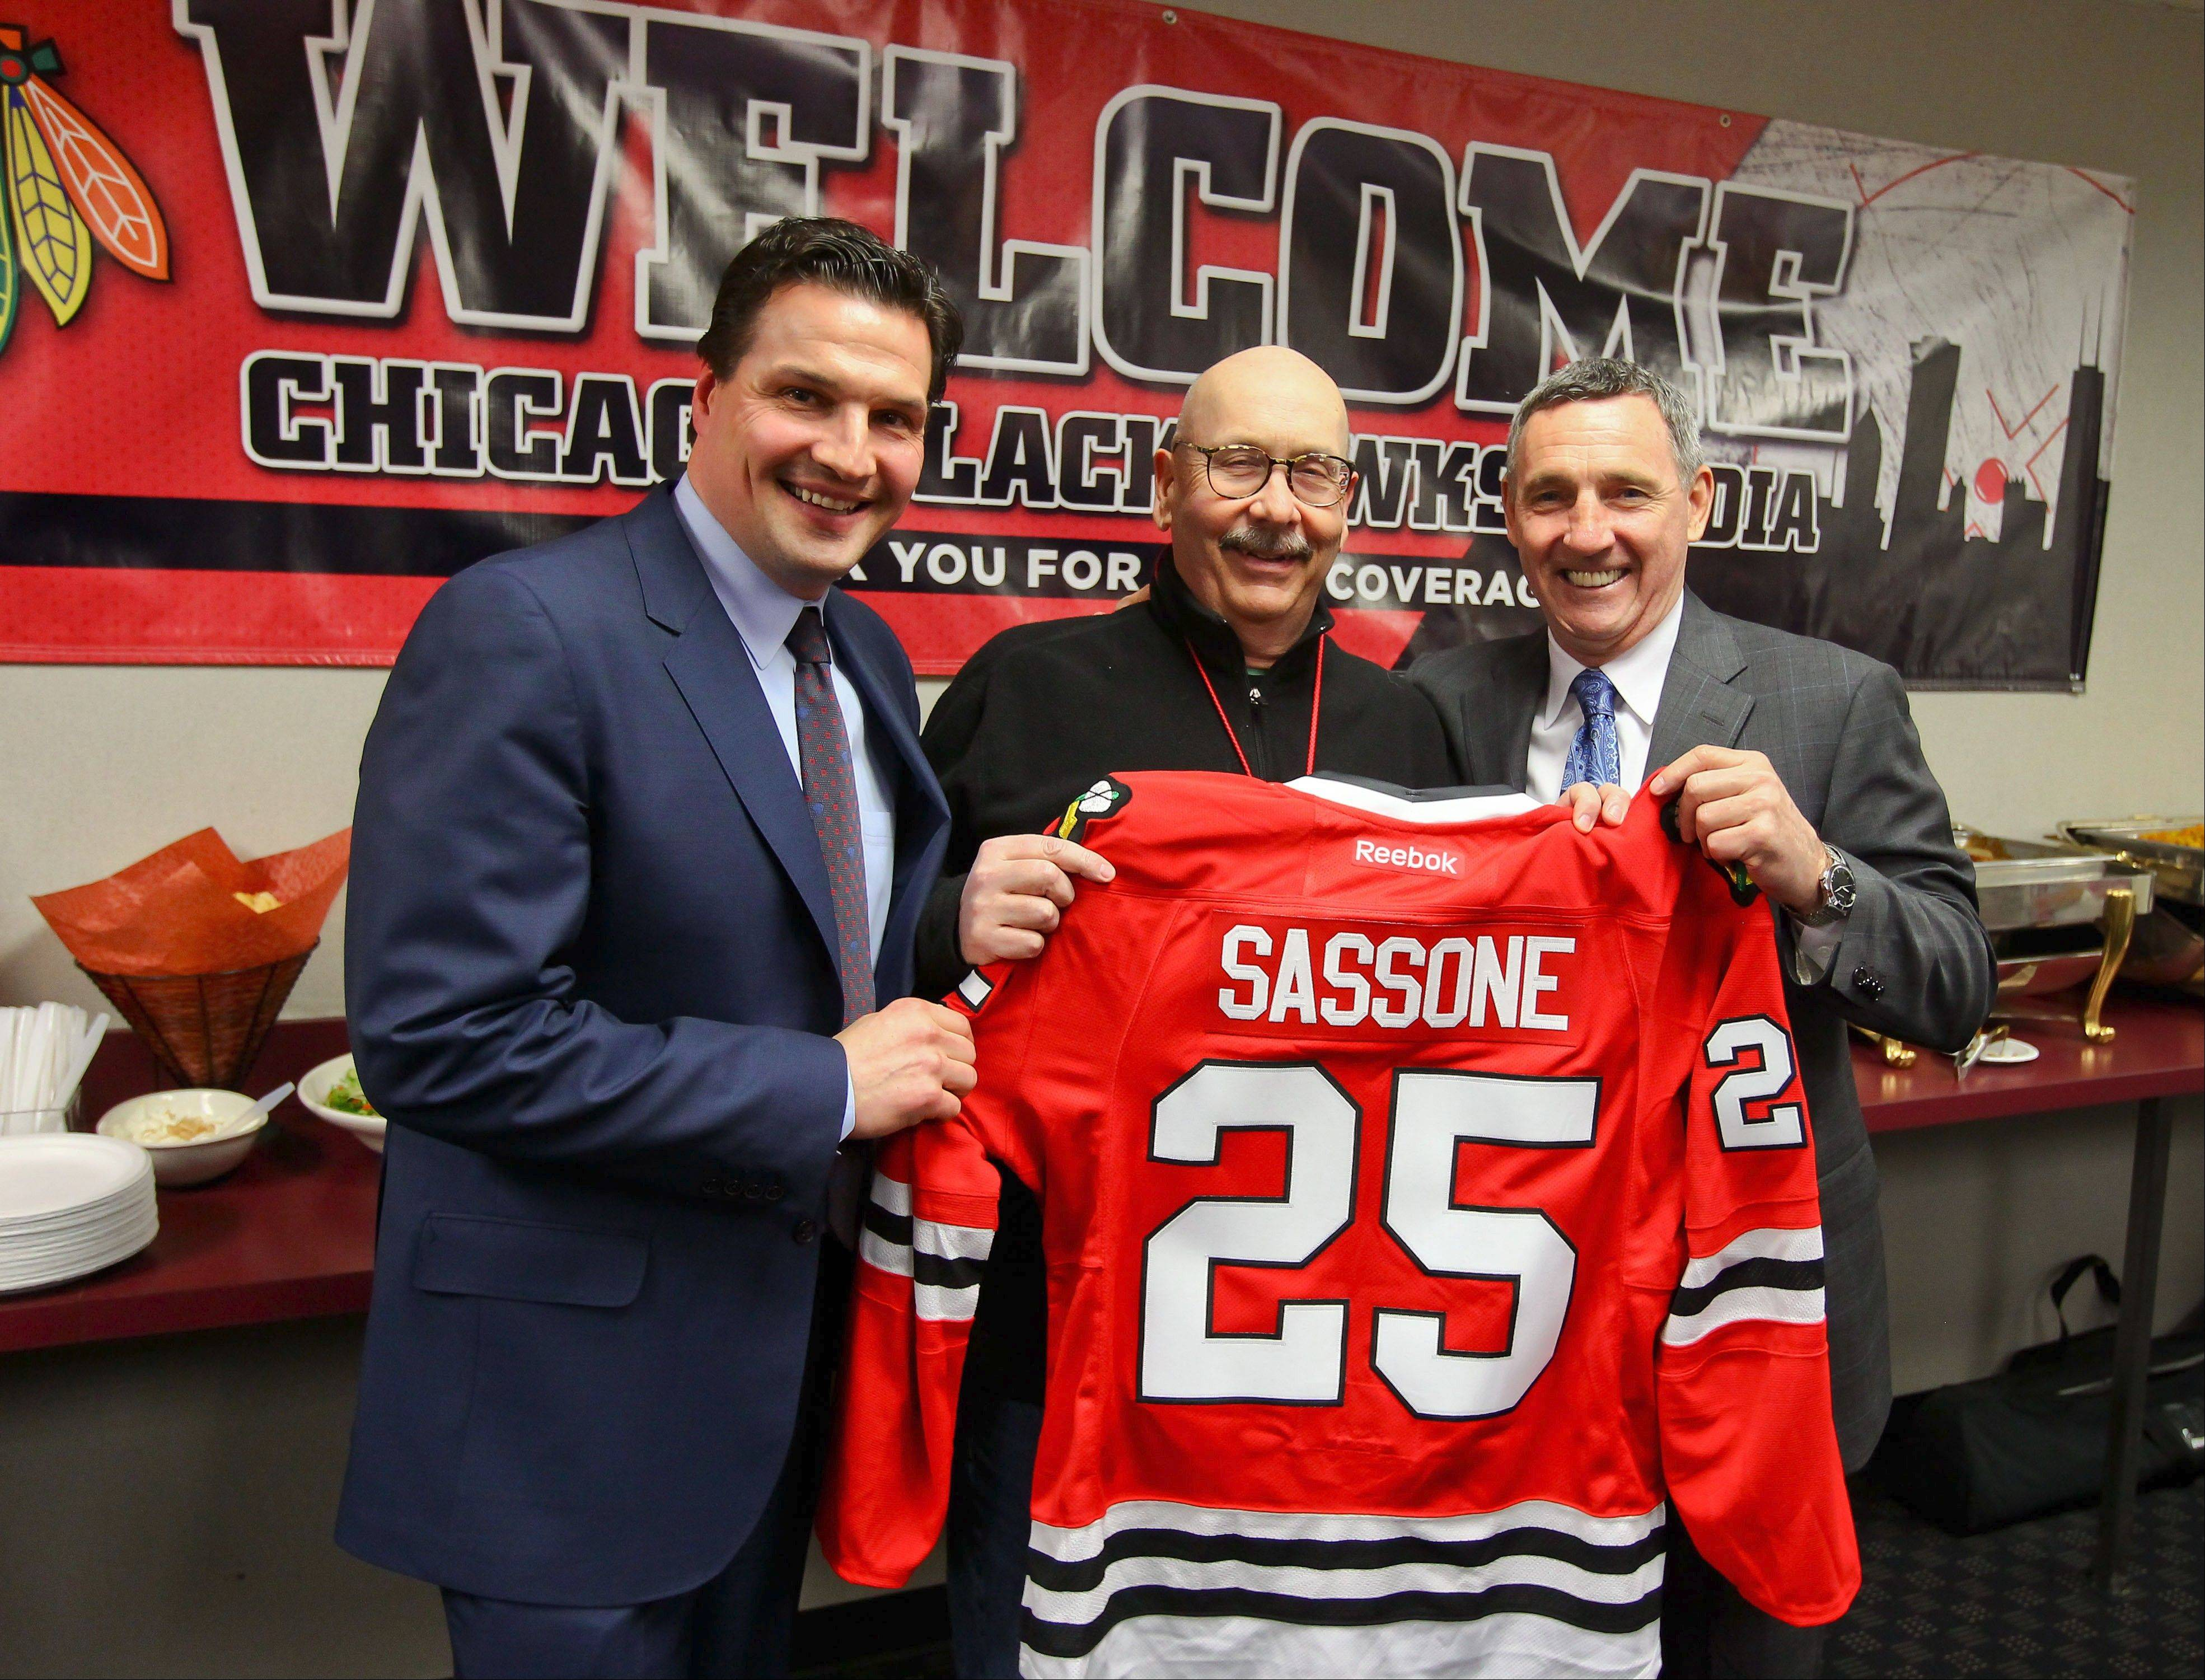 In honor of his 25 years of covering the team, Tim Sassone of the Daily Herald was presented with a Blackhawks jersey by broadcaster Eddie Olczyk, left, and hockey legend Denis Savard during Friday's home game.